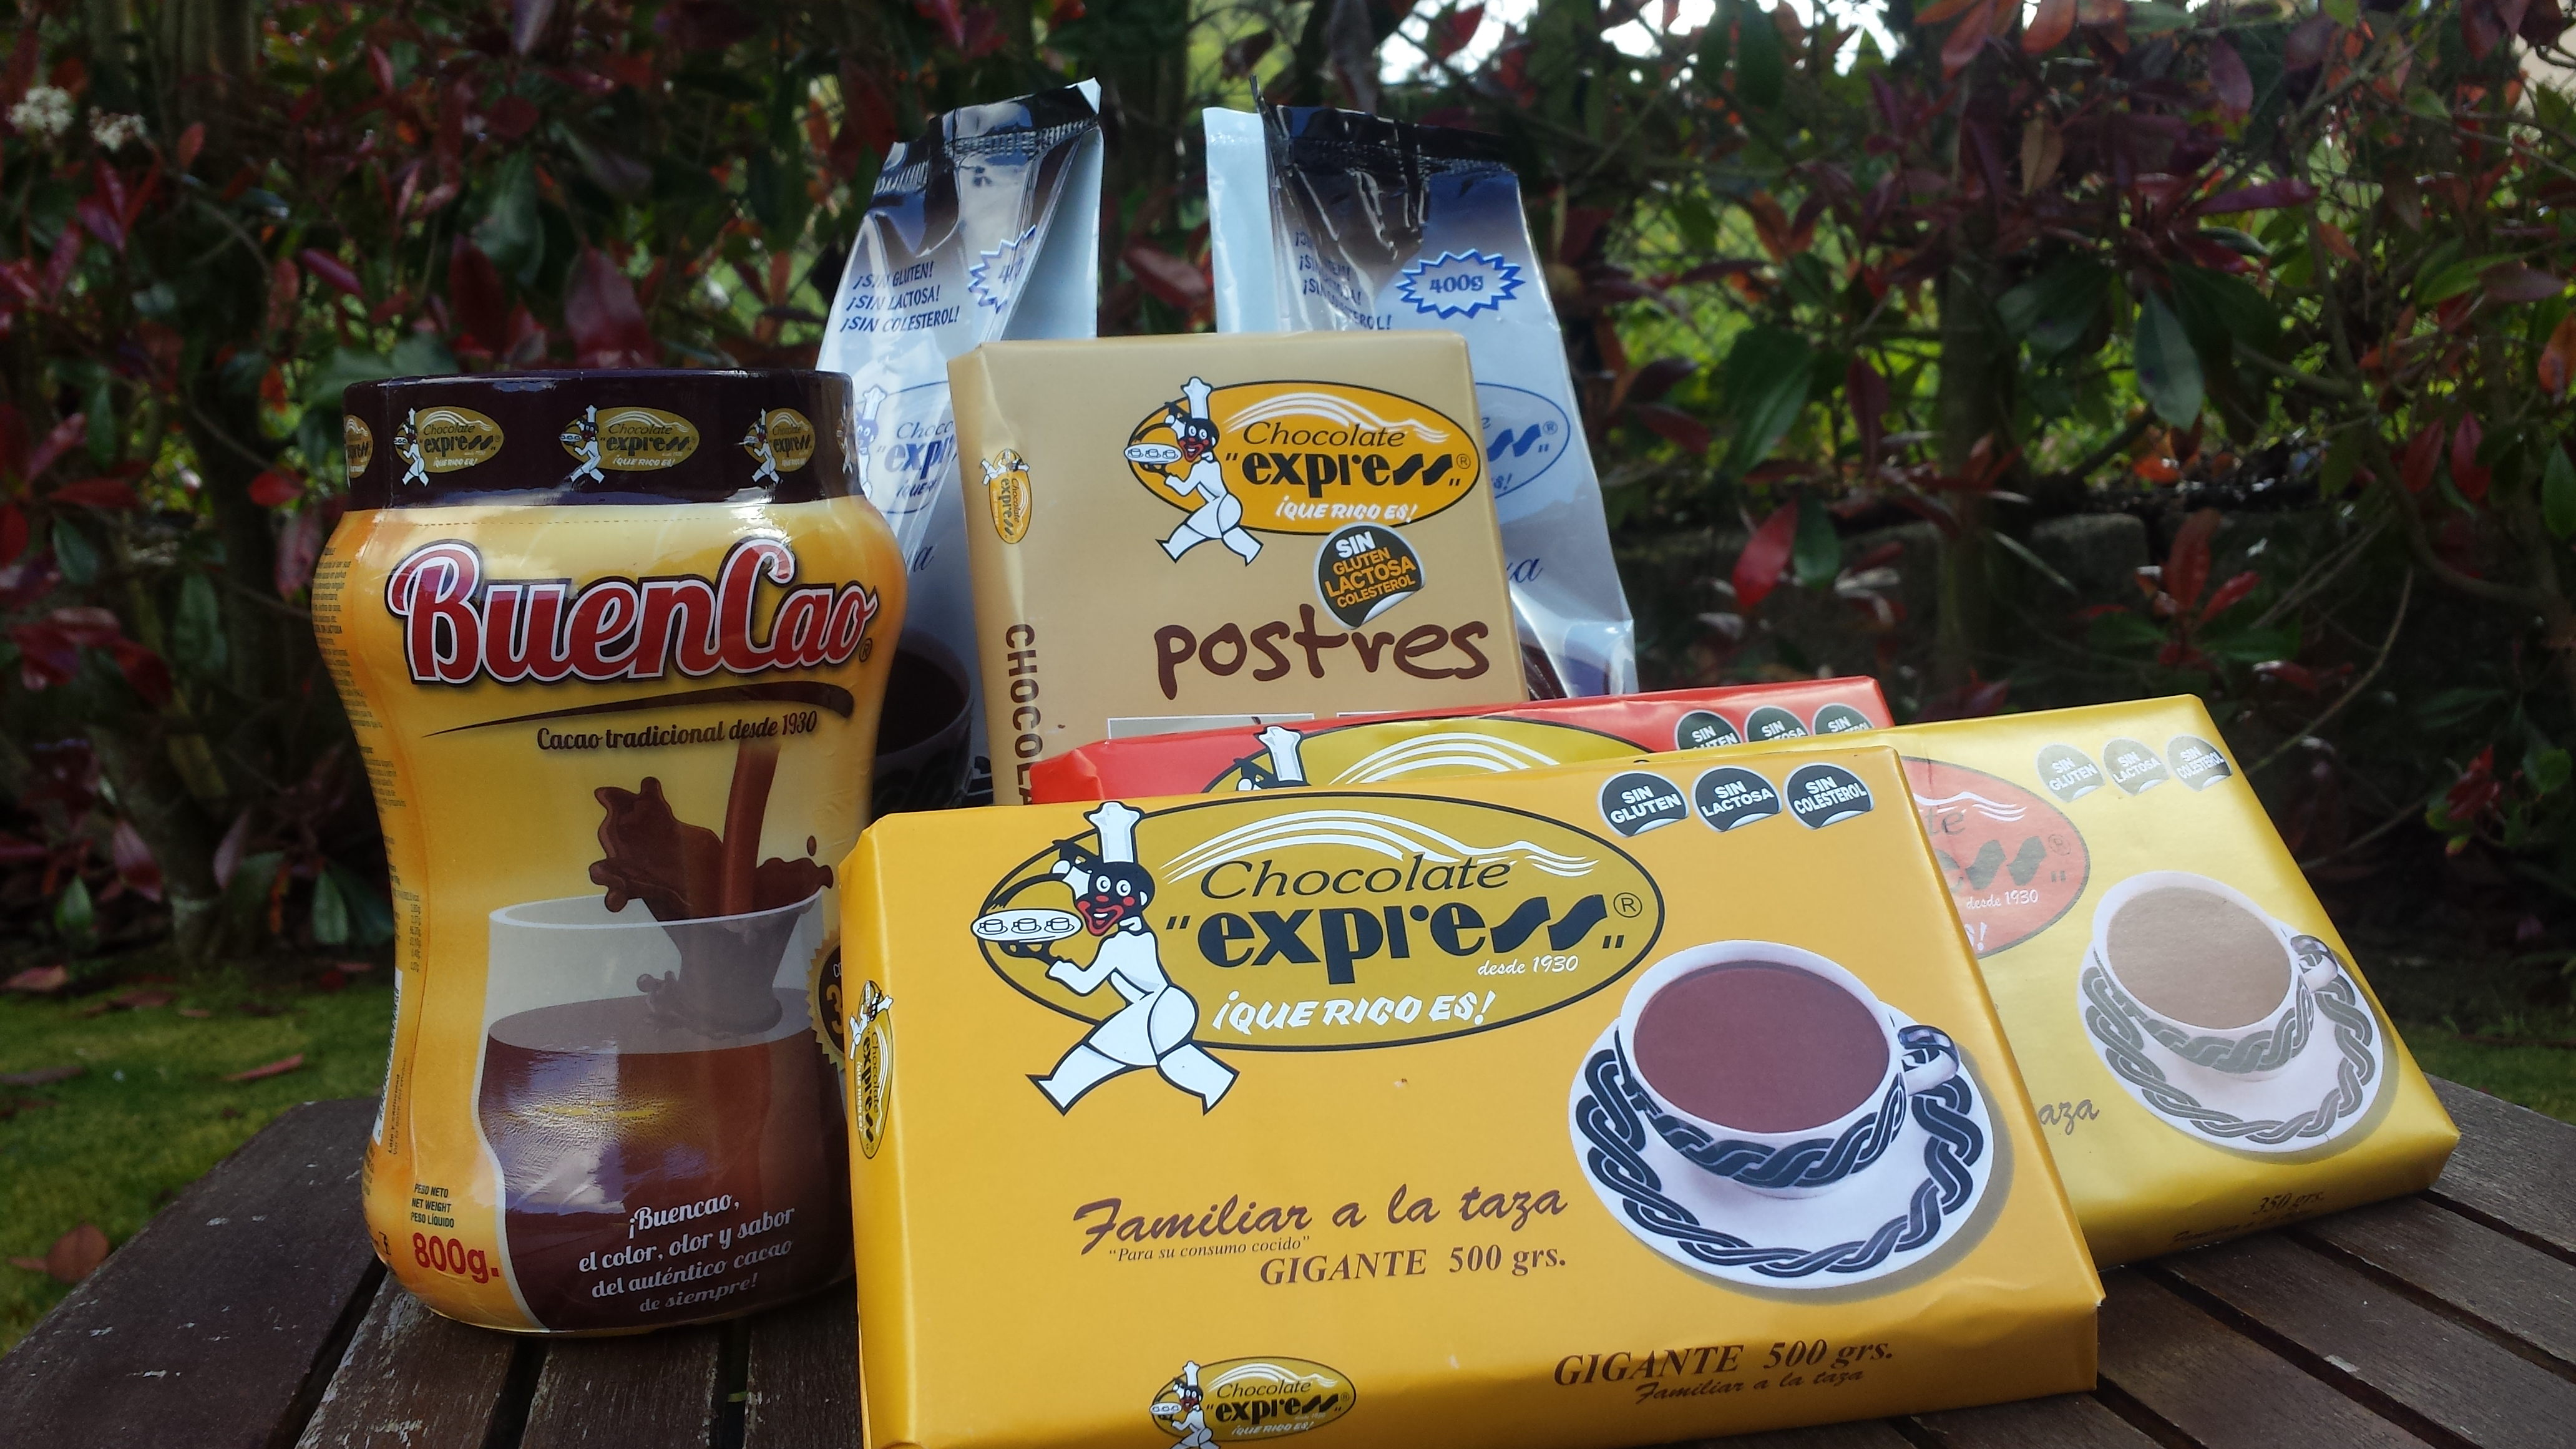 Chocolate Express producto natural made in Galicia